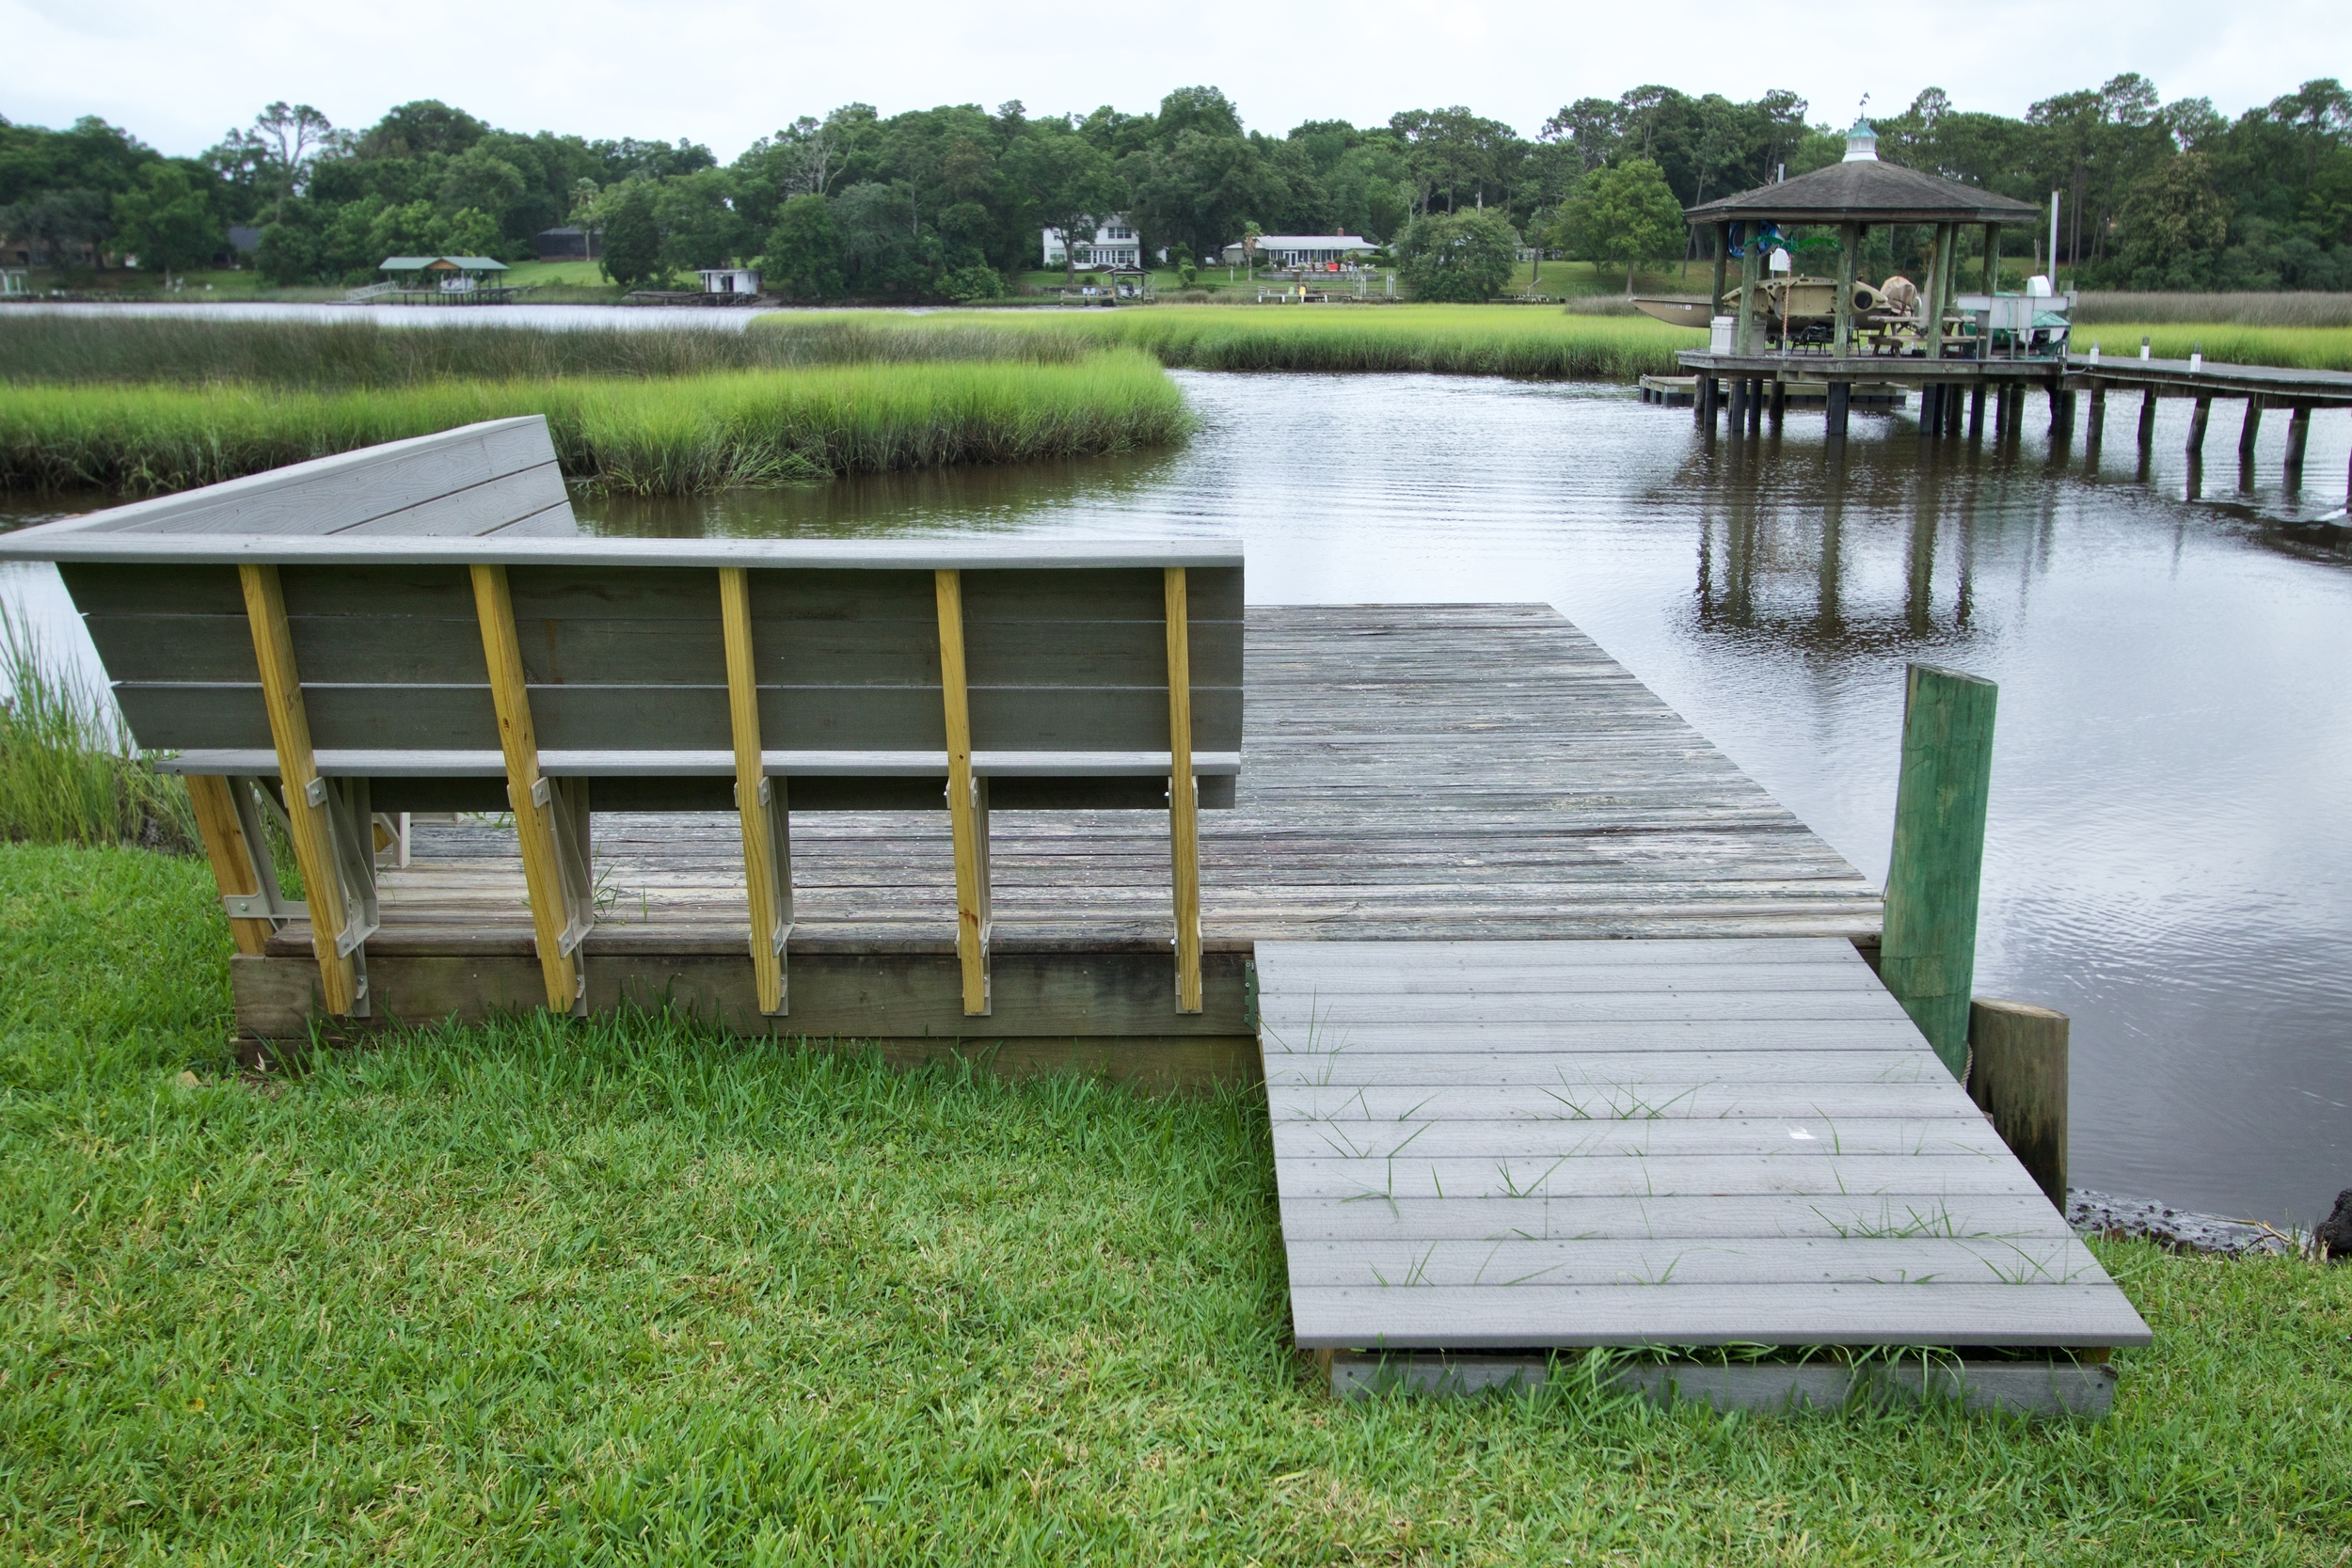 The Editor's redesigned dock benches and ramp.